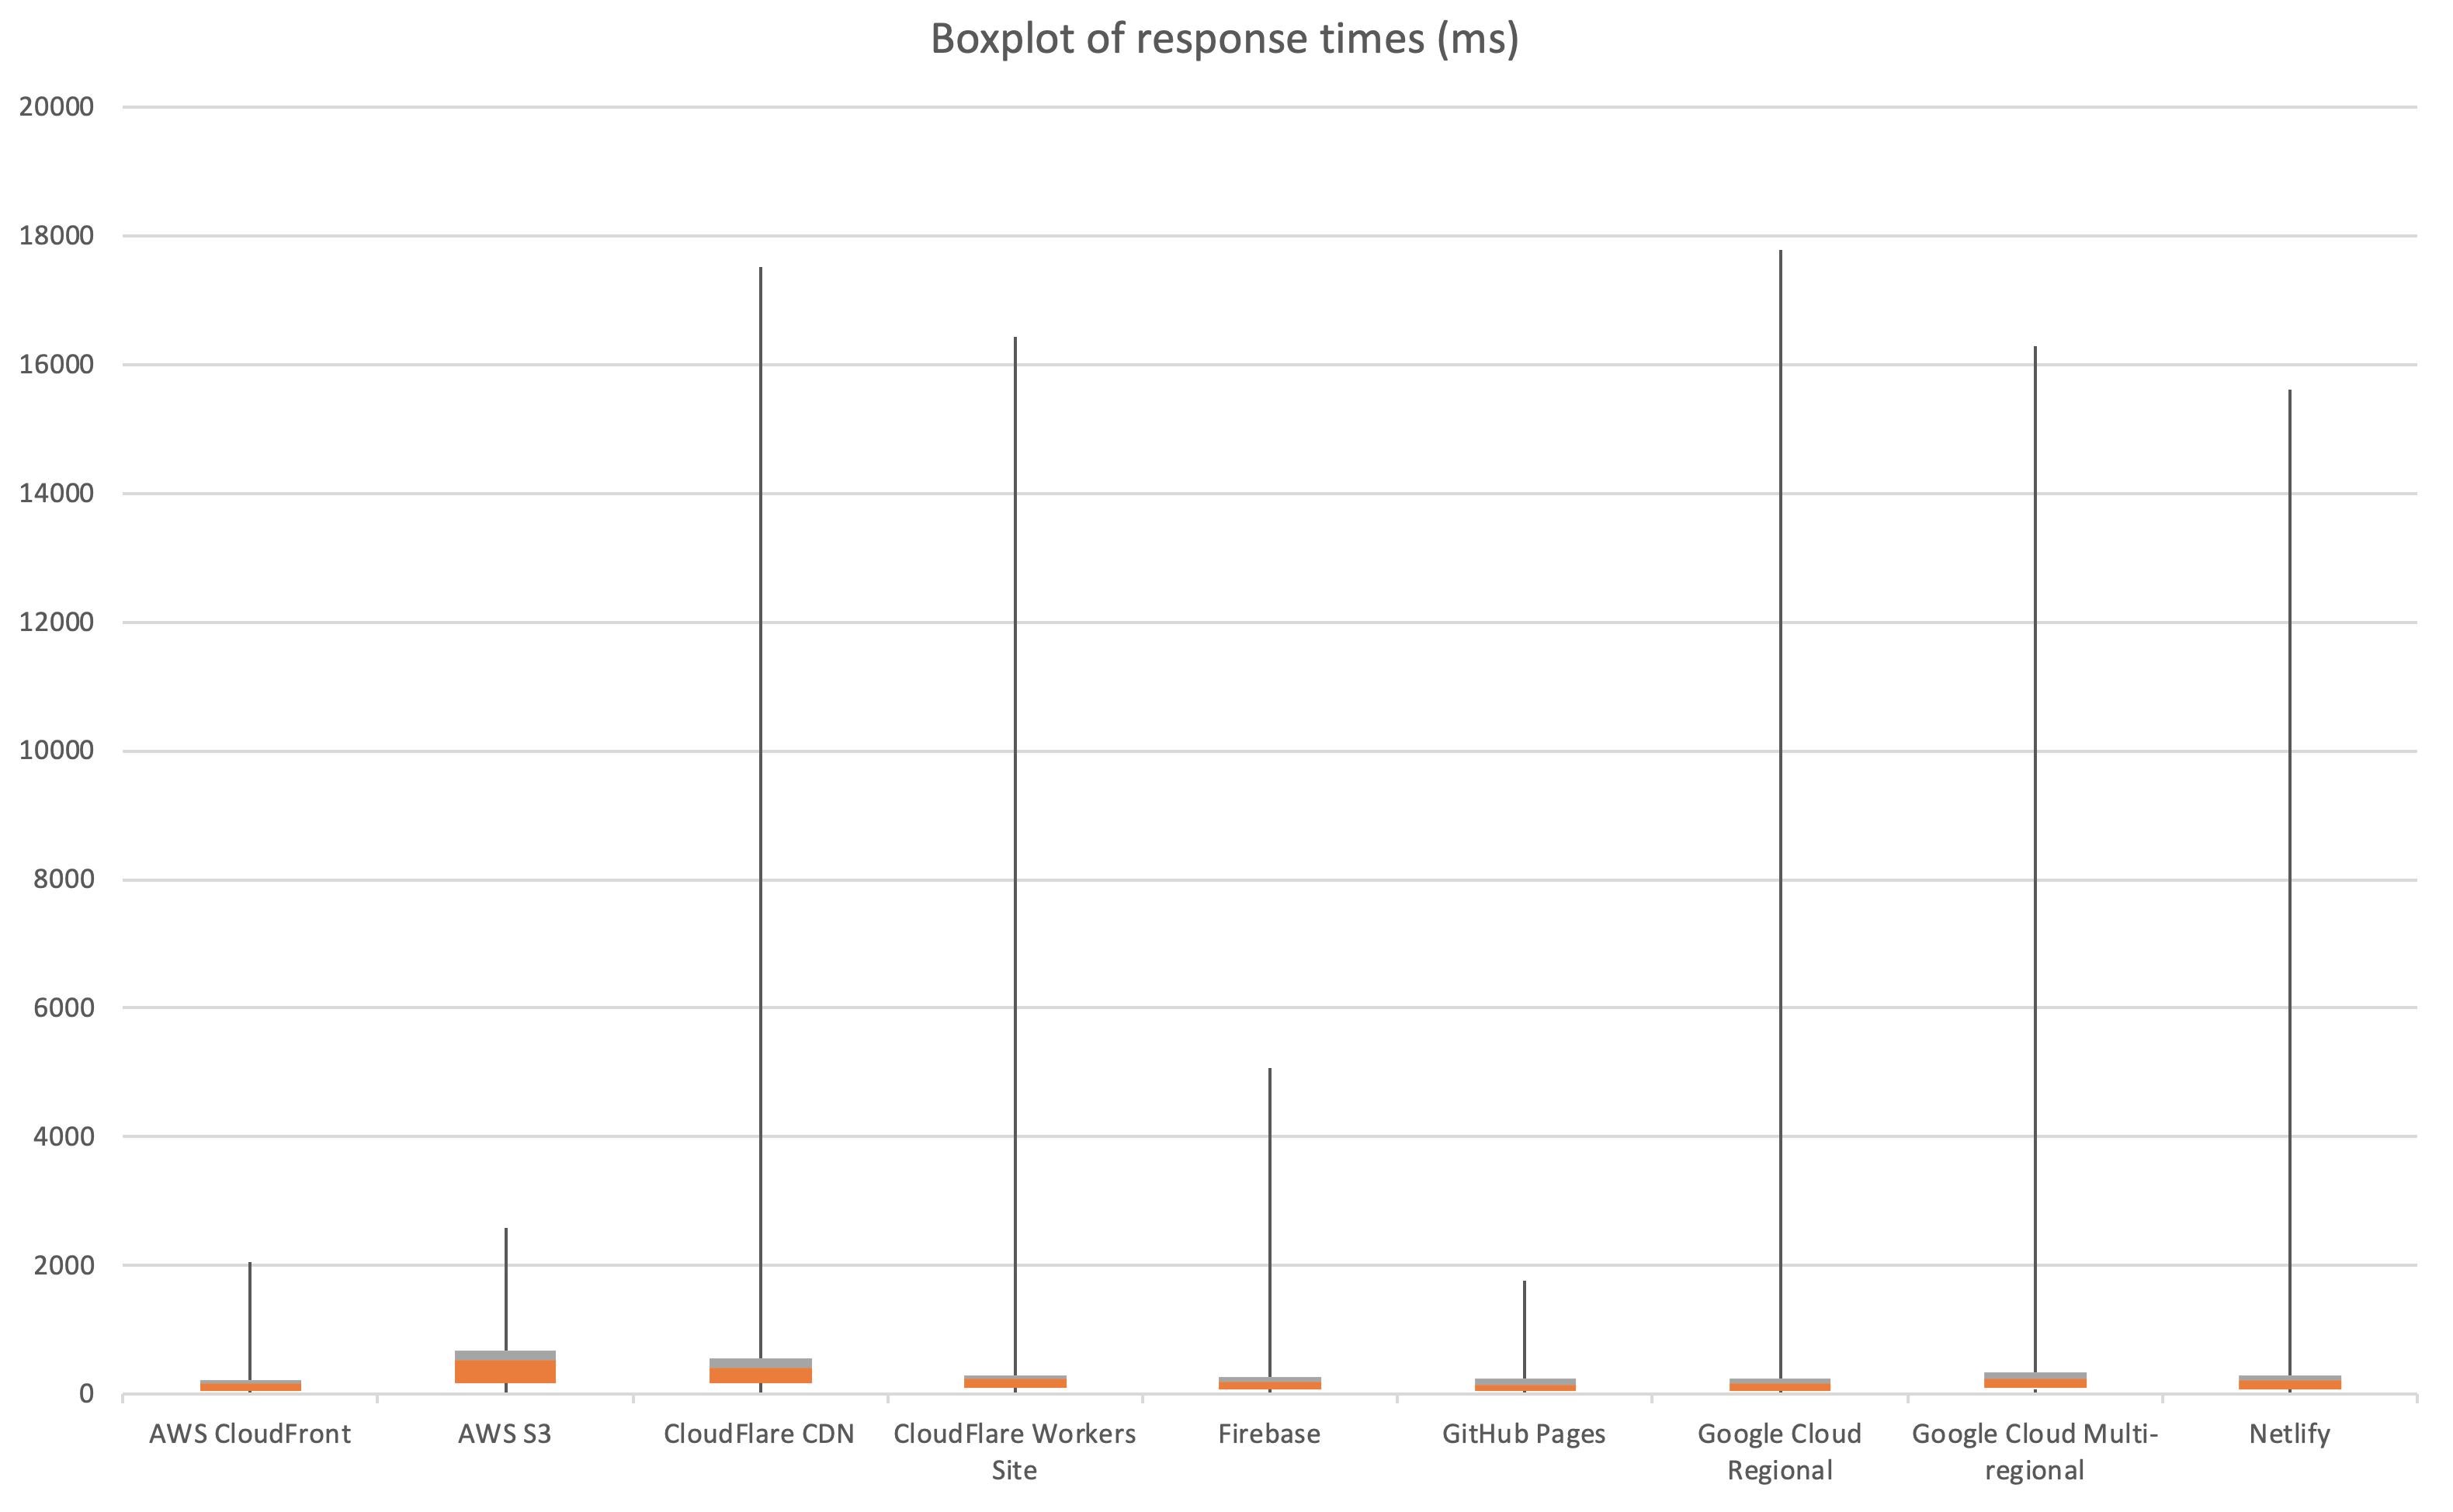 Box plot of response times, showing some high spikes